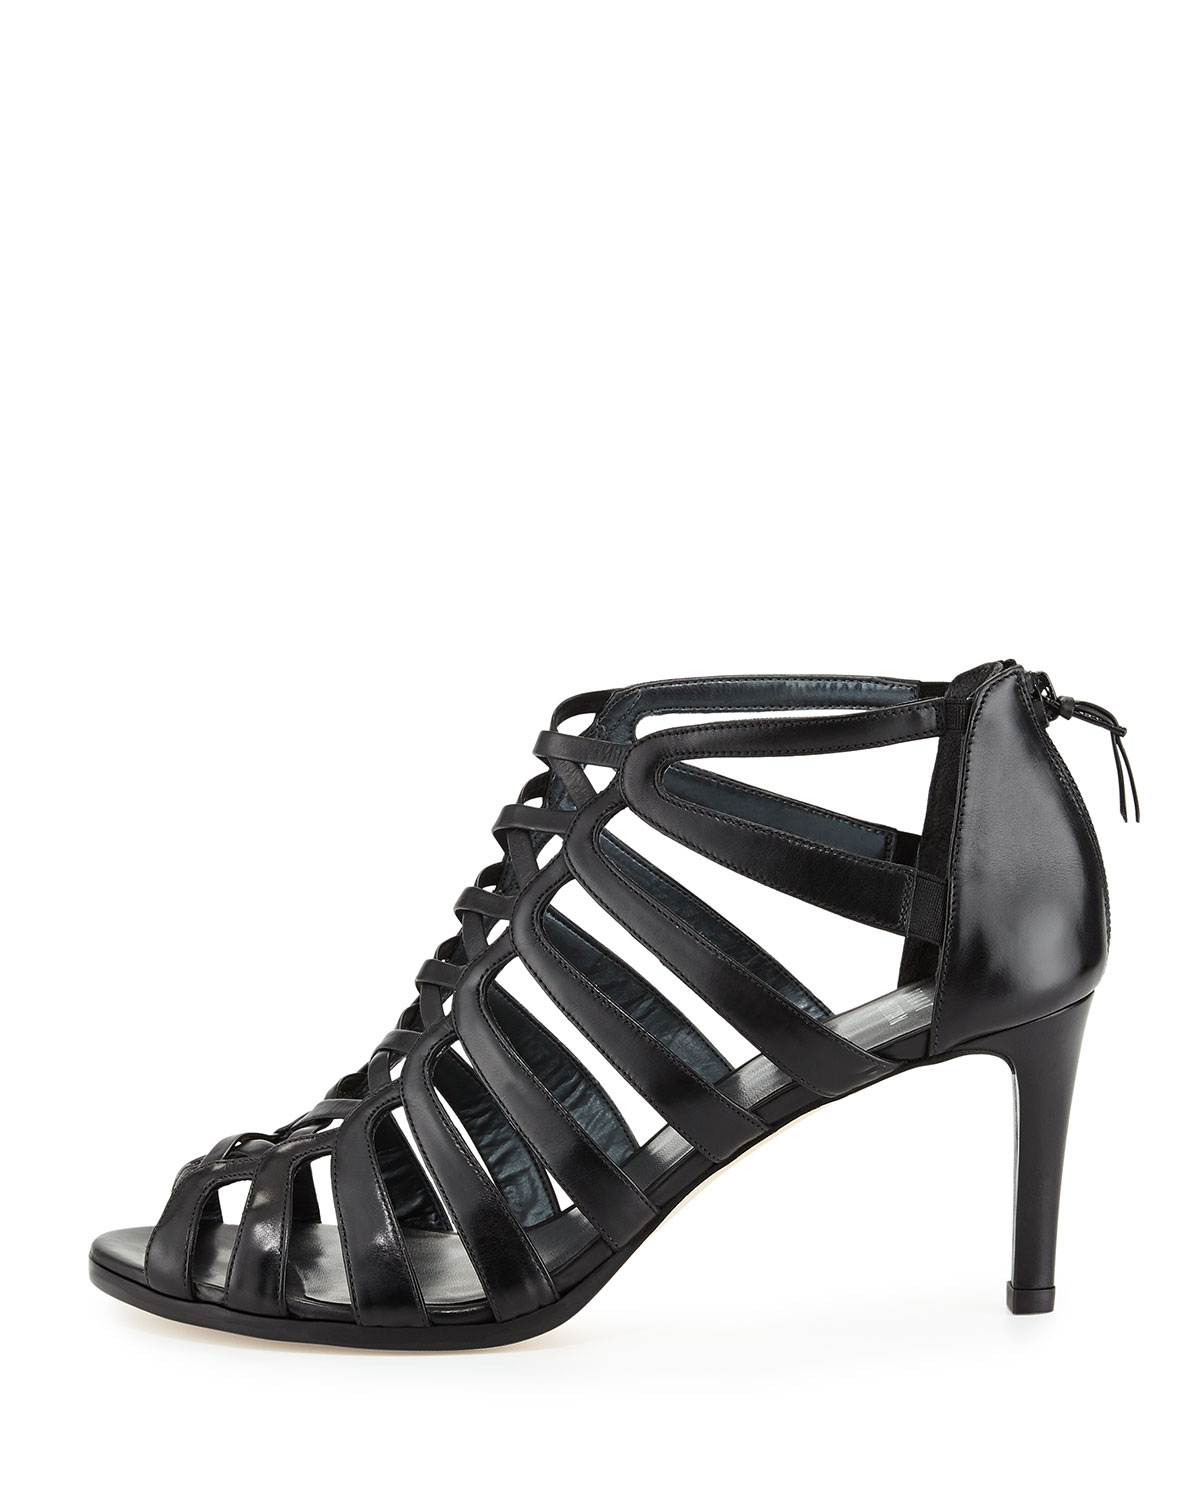 Black Strappy Mid Heel Sandals - Is Heel